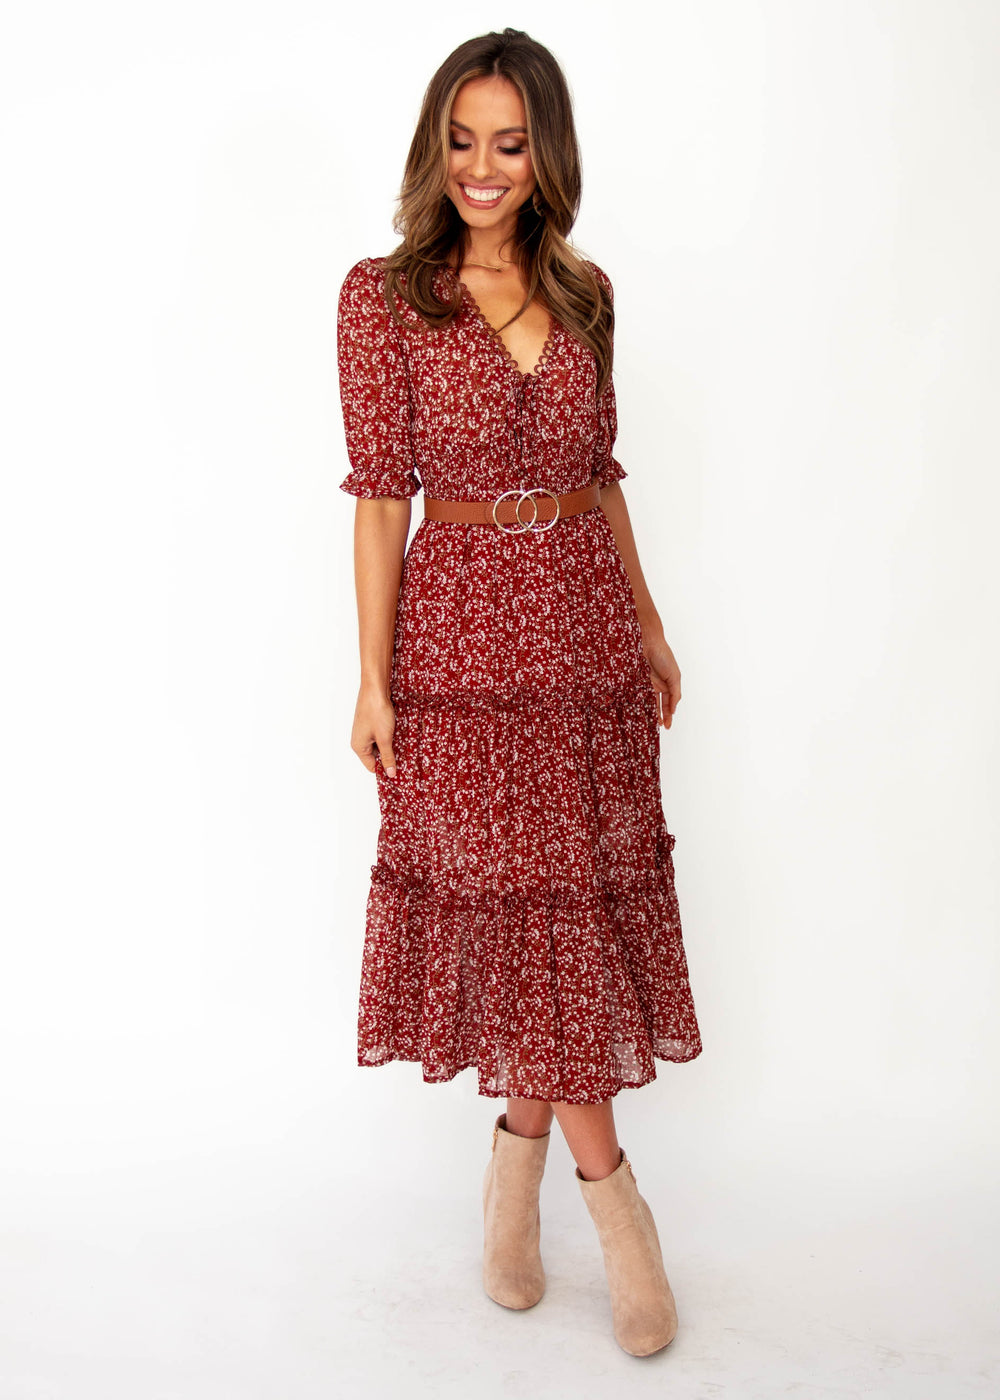 Caught In The Flames Midi Dress - Maroon Floral